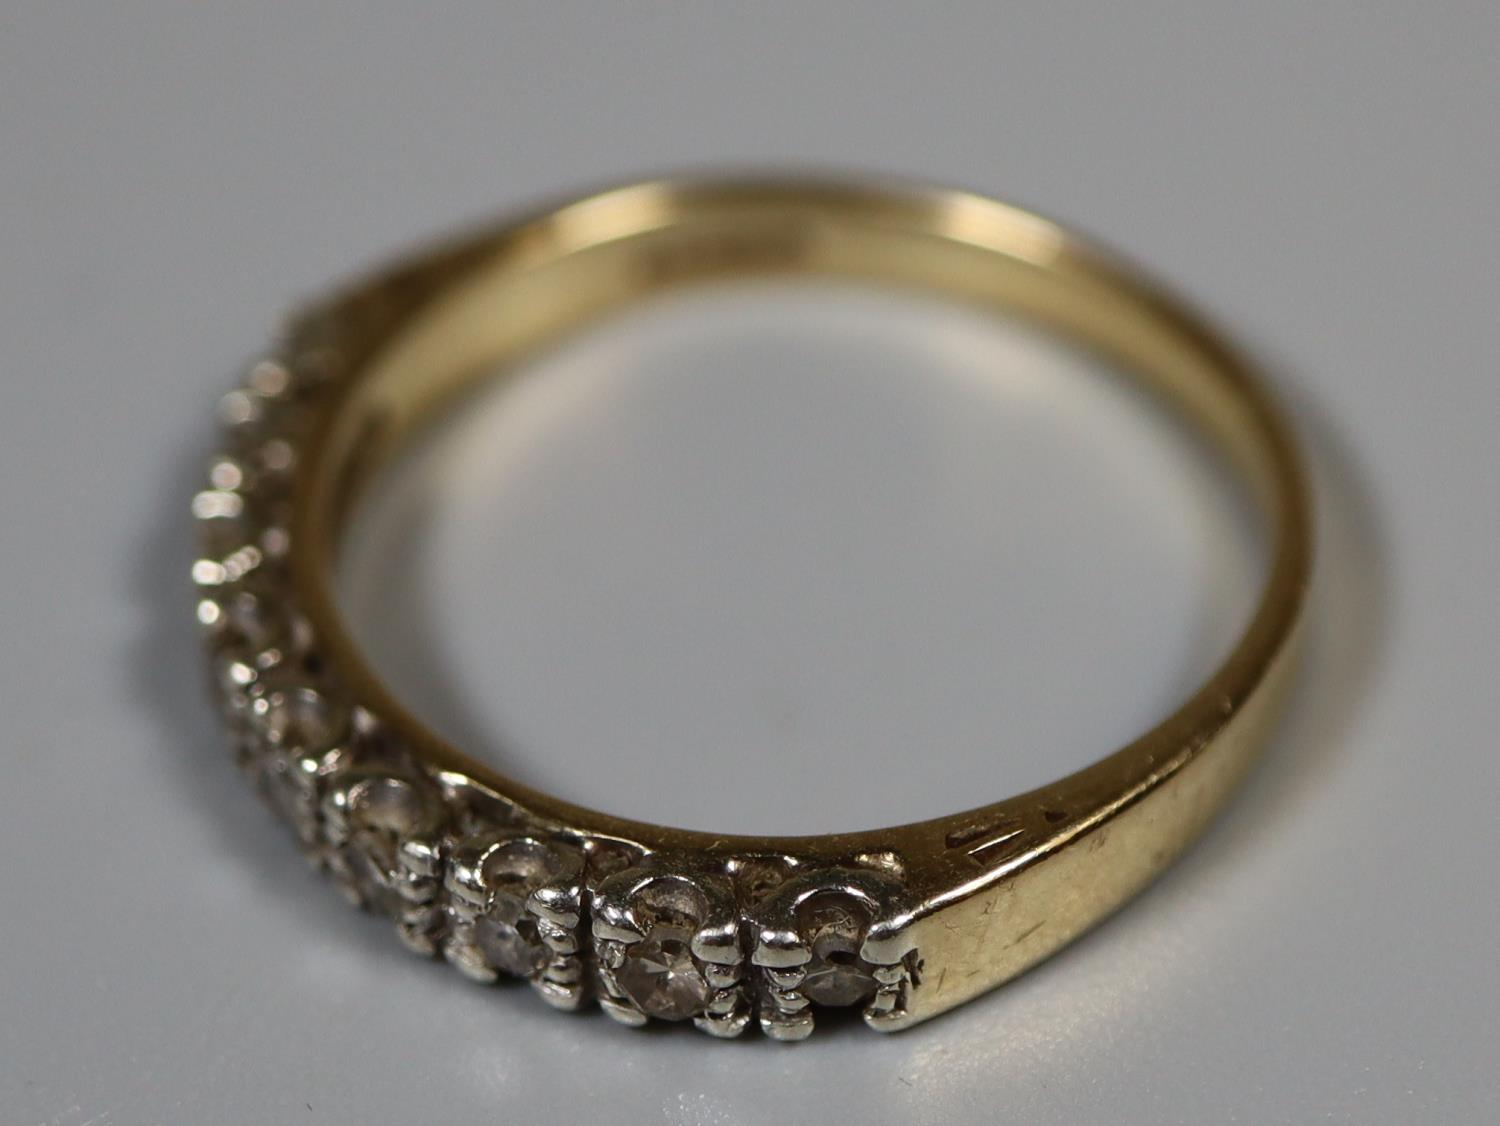 9ct gold and diamond half eternity style ring. Ring size Q. Approx weight 2.8 grams. (B.P. 21% + - Image 3 of 3